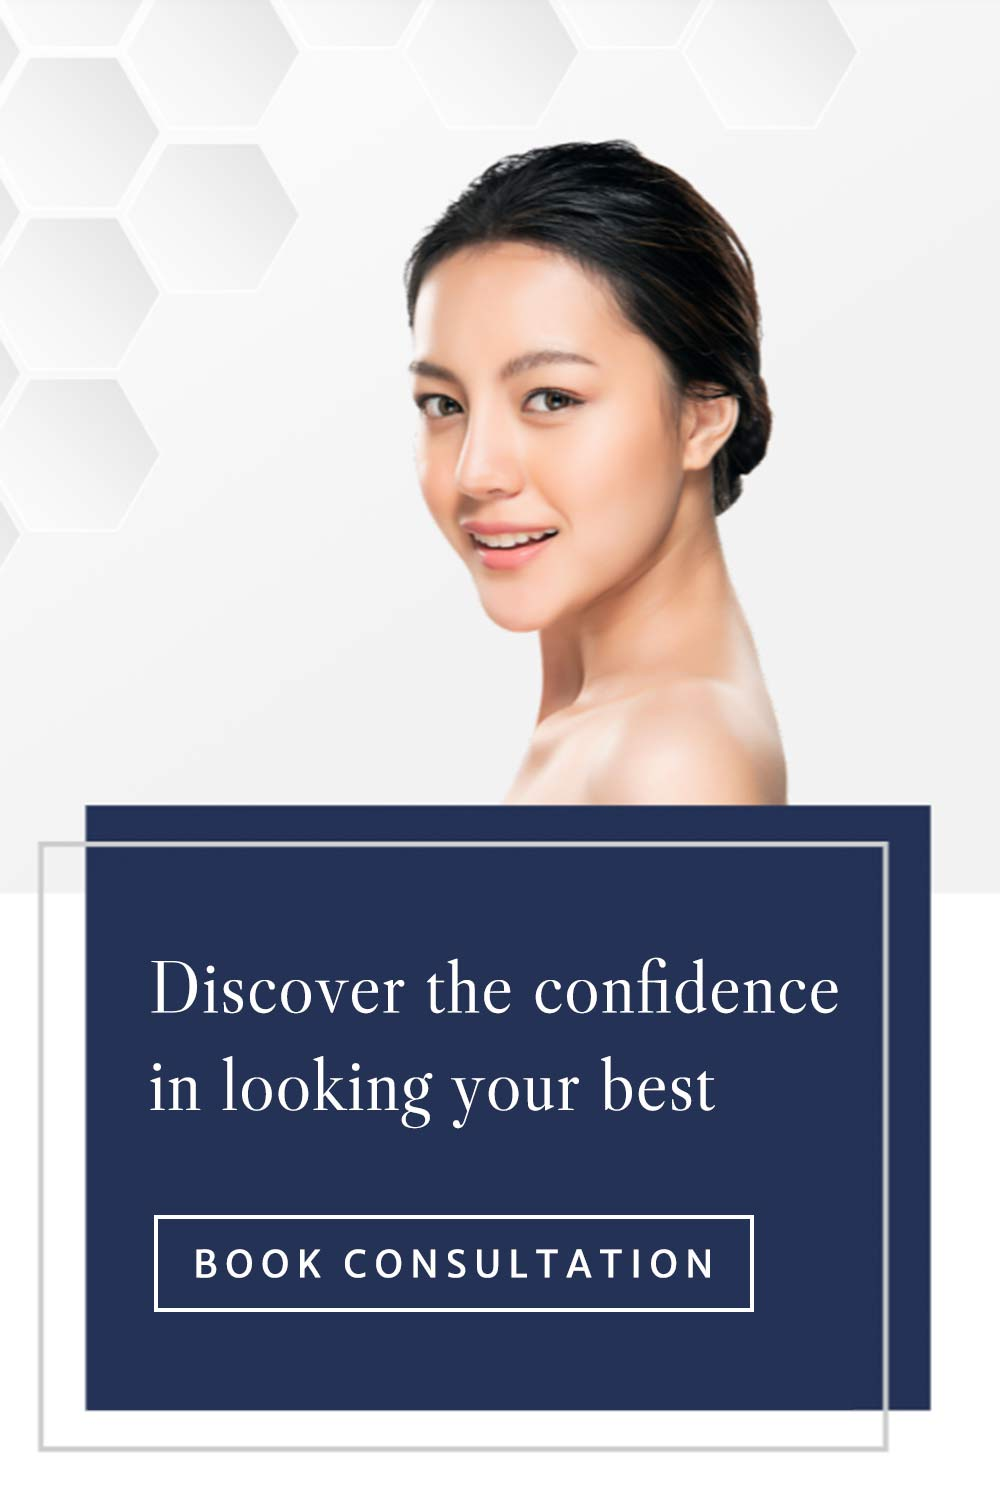 Eastern Plastic Surgery- Discover the confidence in looking your best